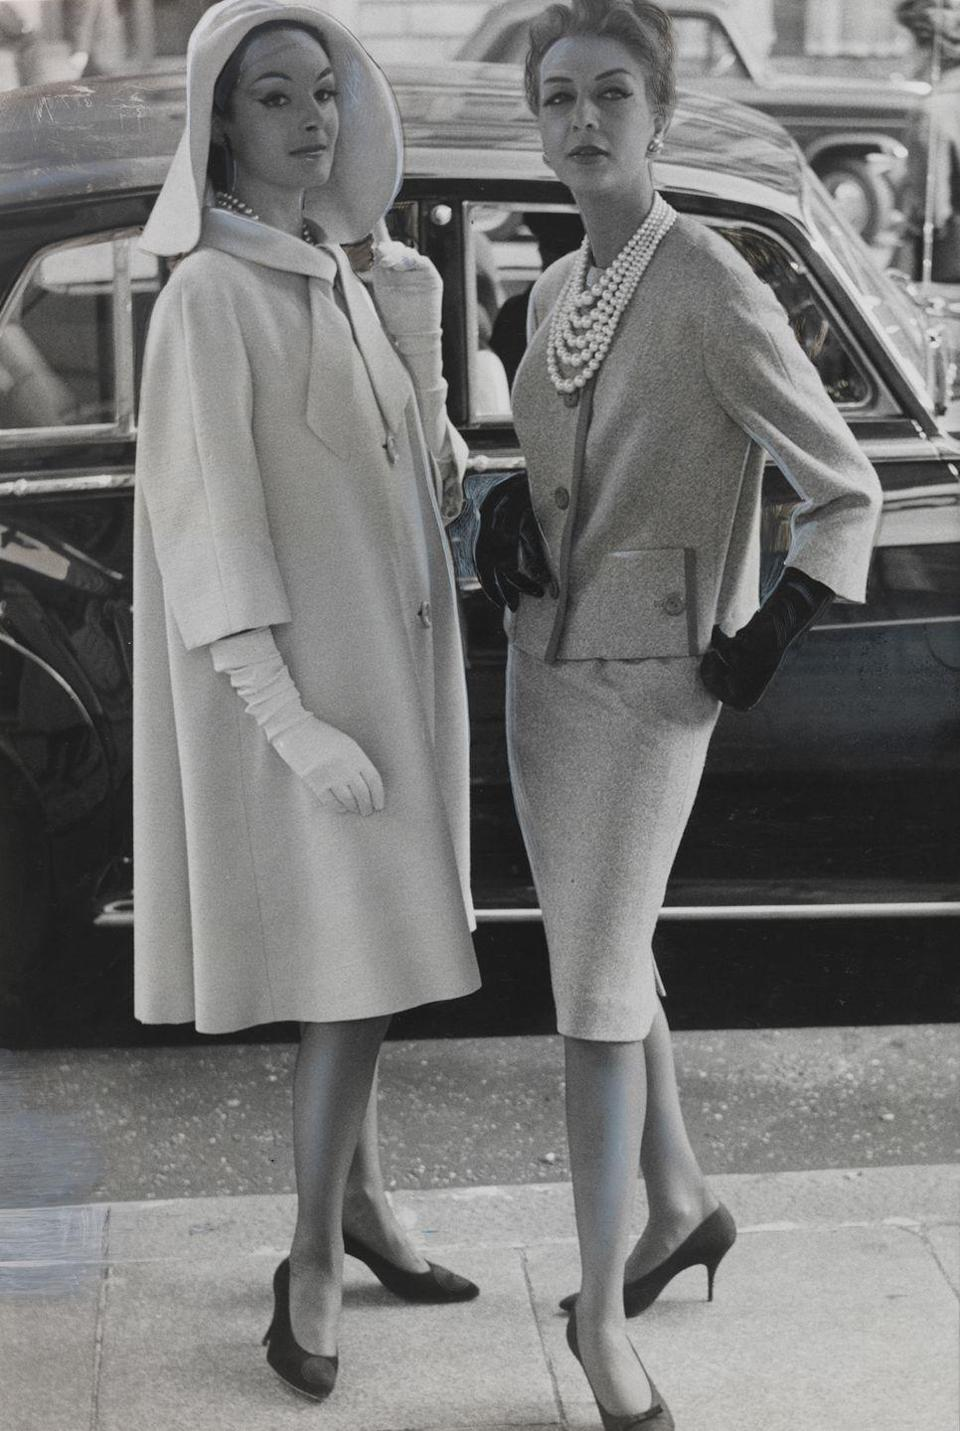 <p>Two dressed up ladies with somewhere to go.</p>